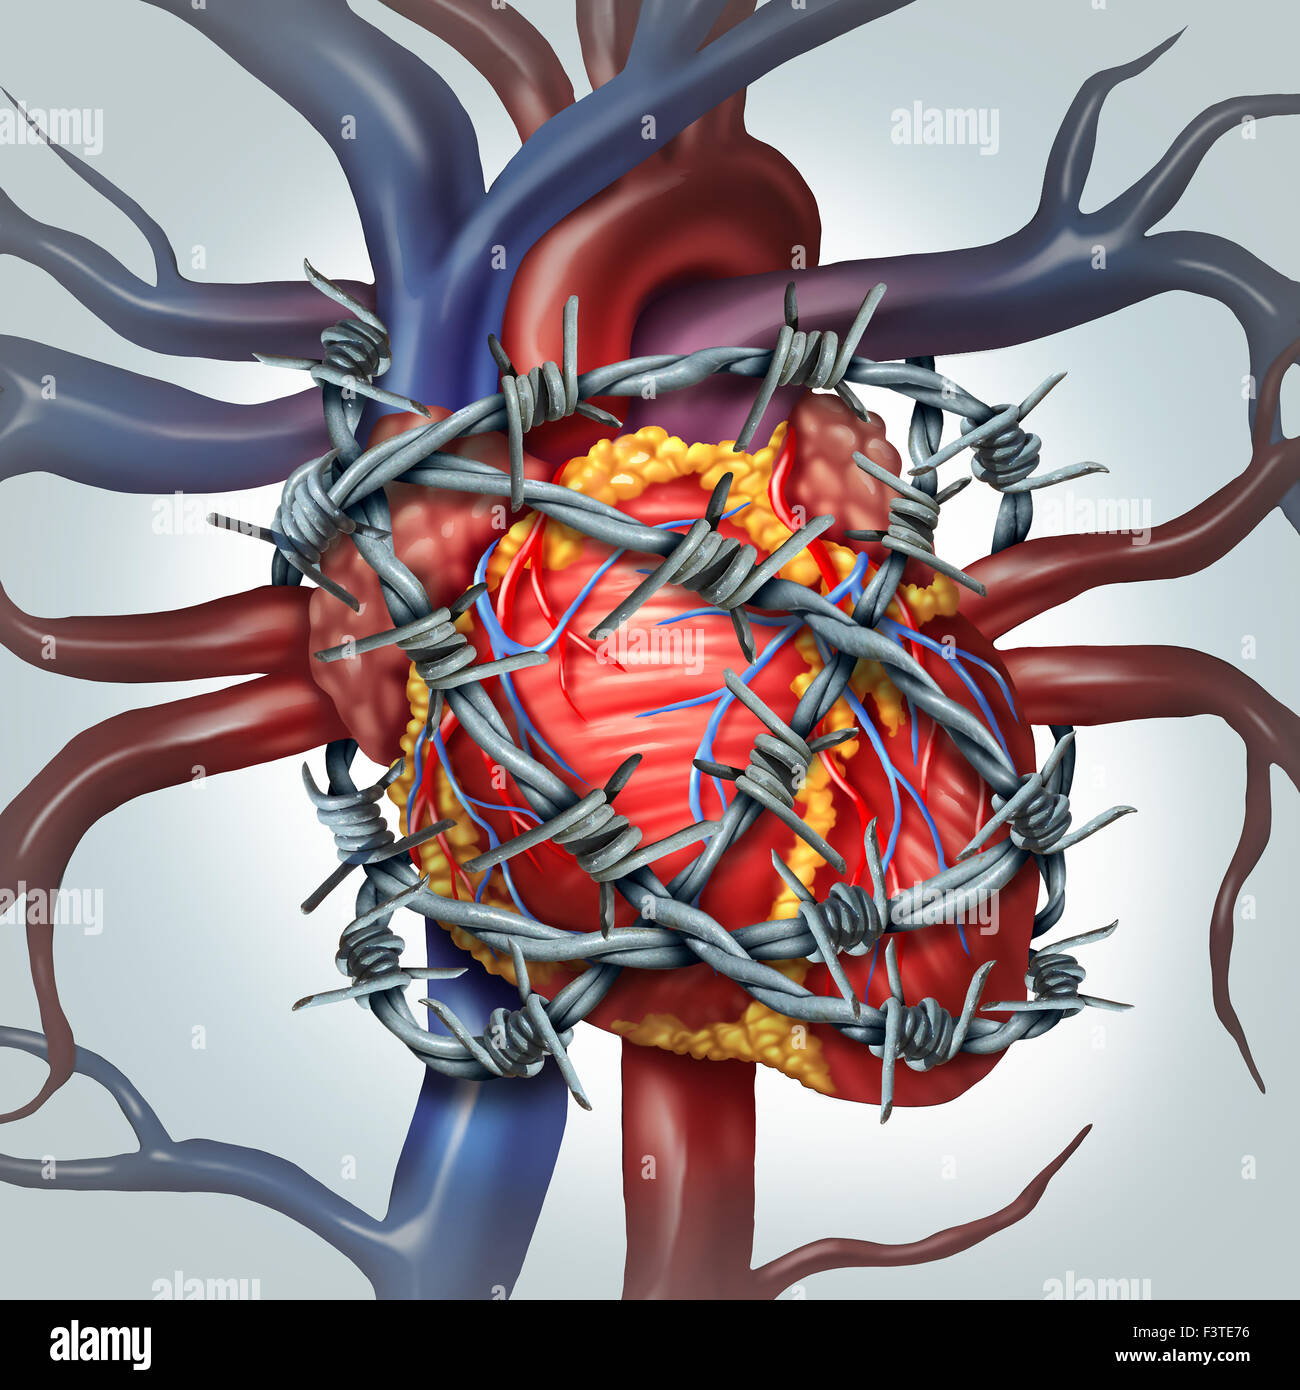 Heart pain medical health care concept as a human cardiovascular organ wrapped in sharp barbed wire as a metaphor - Stock Image